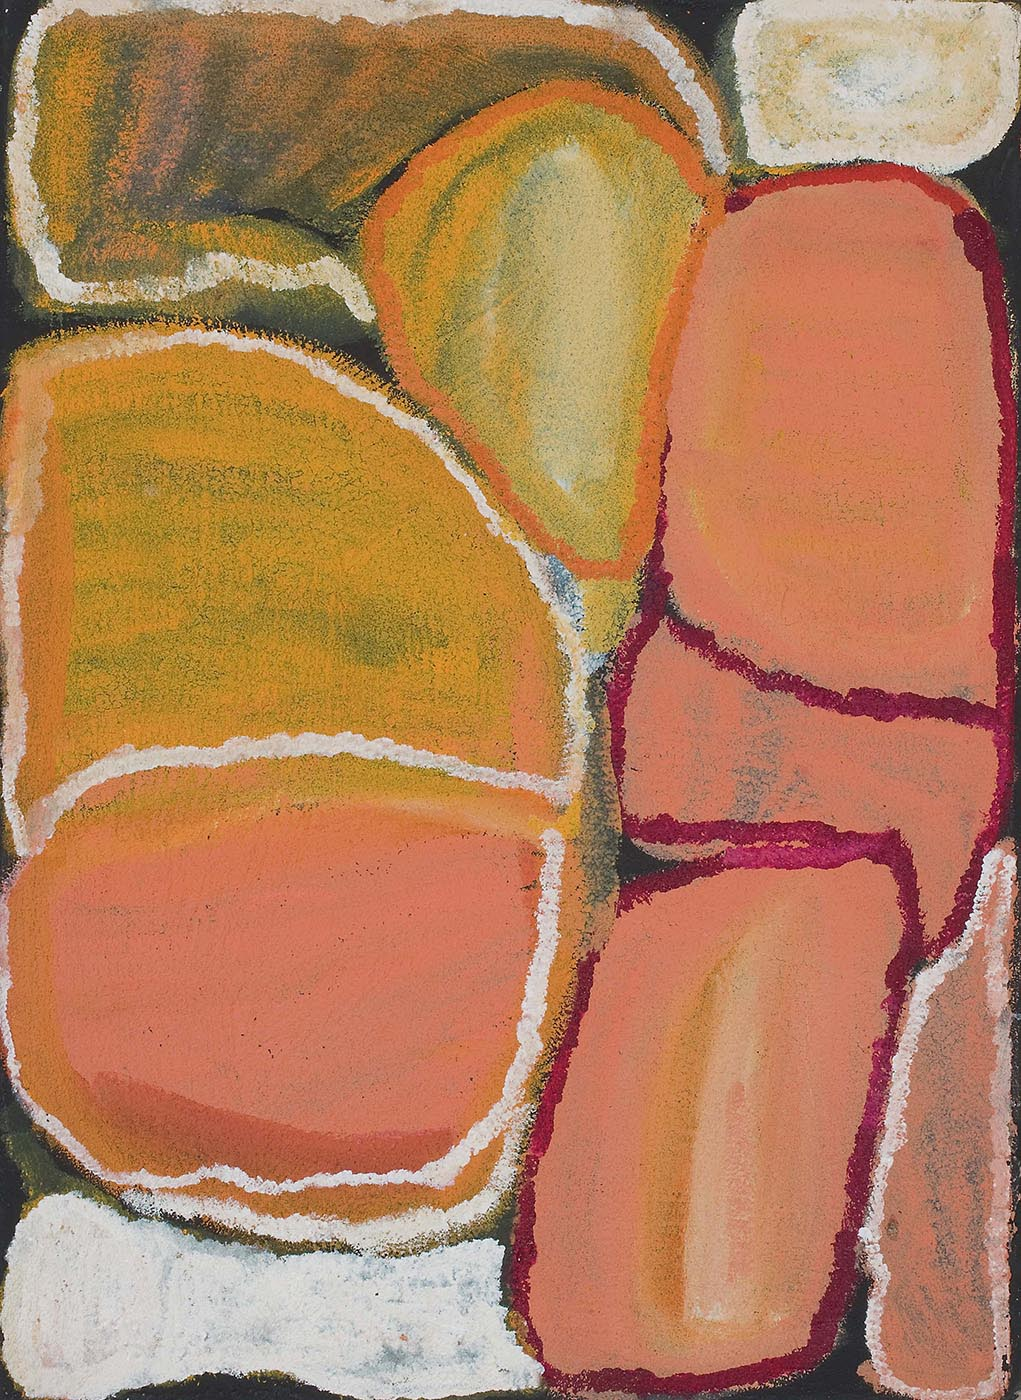 An orange toned painting on brown linen of boulder-like shapes on a black background. The left of the painting has an oval shape in yellow-orange and pink-orange with a white edge and horizontal line across the middle. Underneath this shape is a white filled shape while above it is a translucent shape in yellow-pink with a white edge. At the centre top is a rounded triangle shape of yellow-white with an orange edge. On the right of the painting is a stack of three orange-pink shapes with burgundy outlines, with a yellow-white shape above and a translucent orange shape in the bottom right corner. - click to view larger image